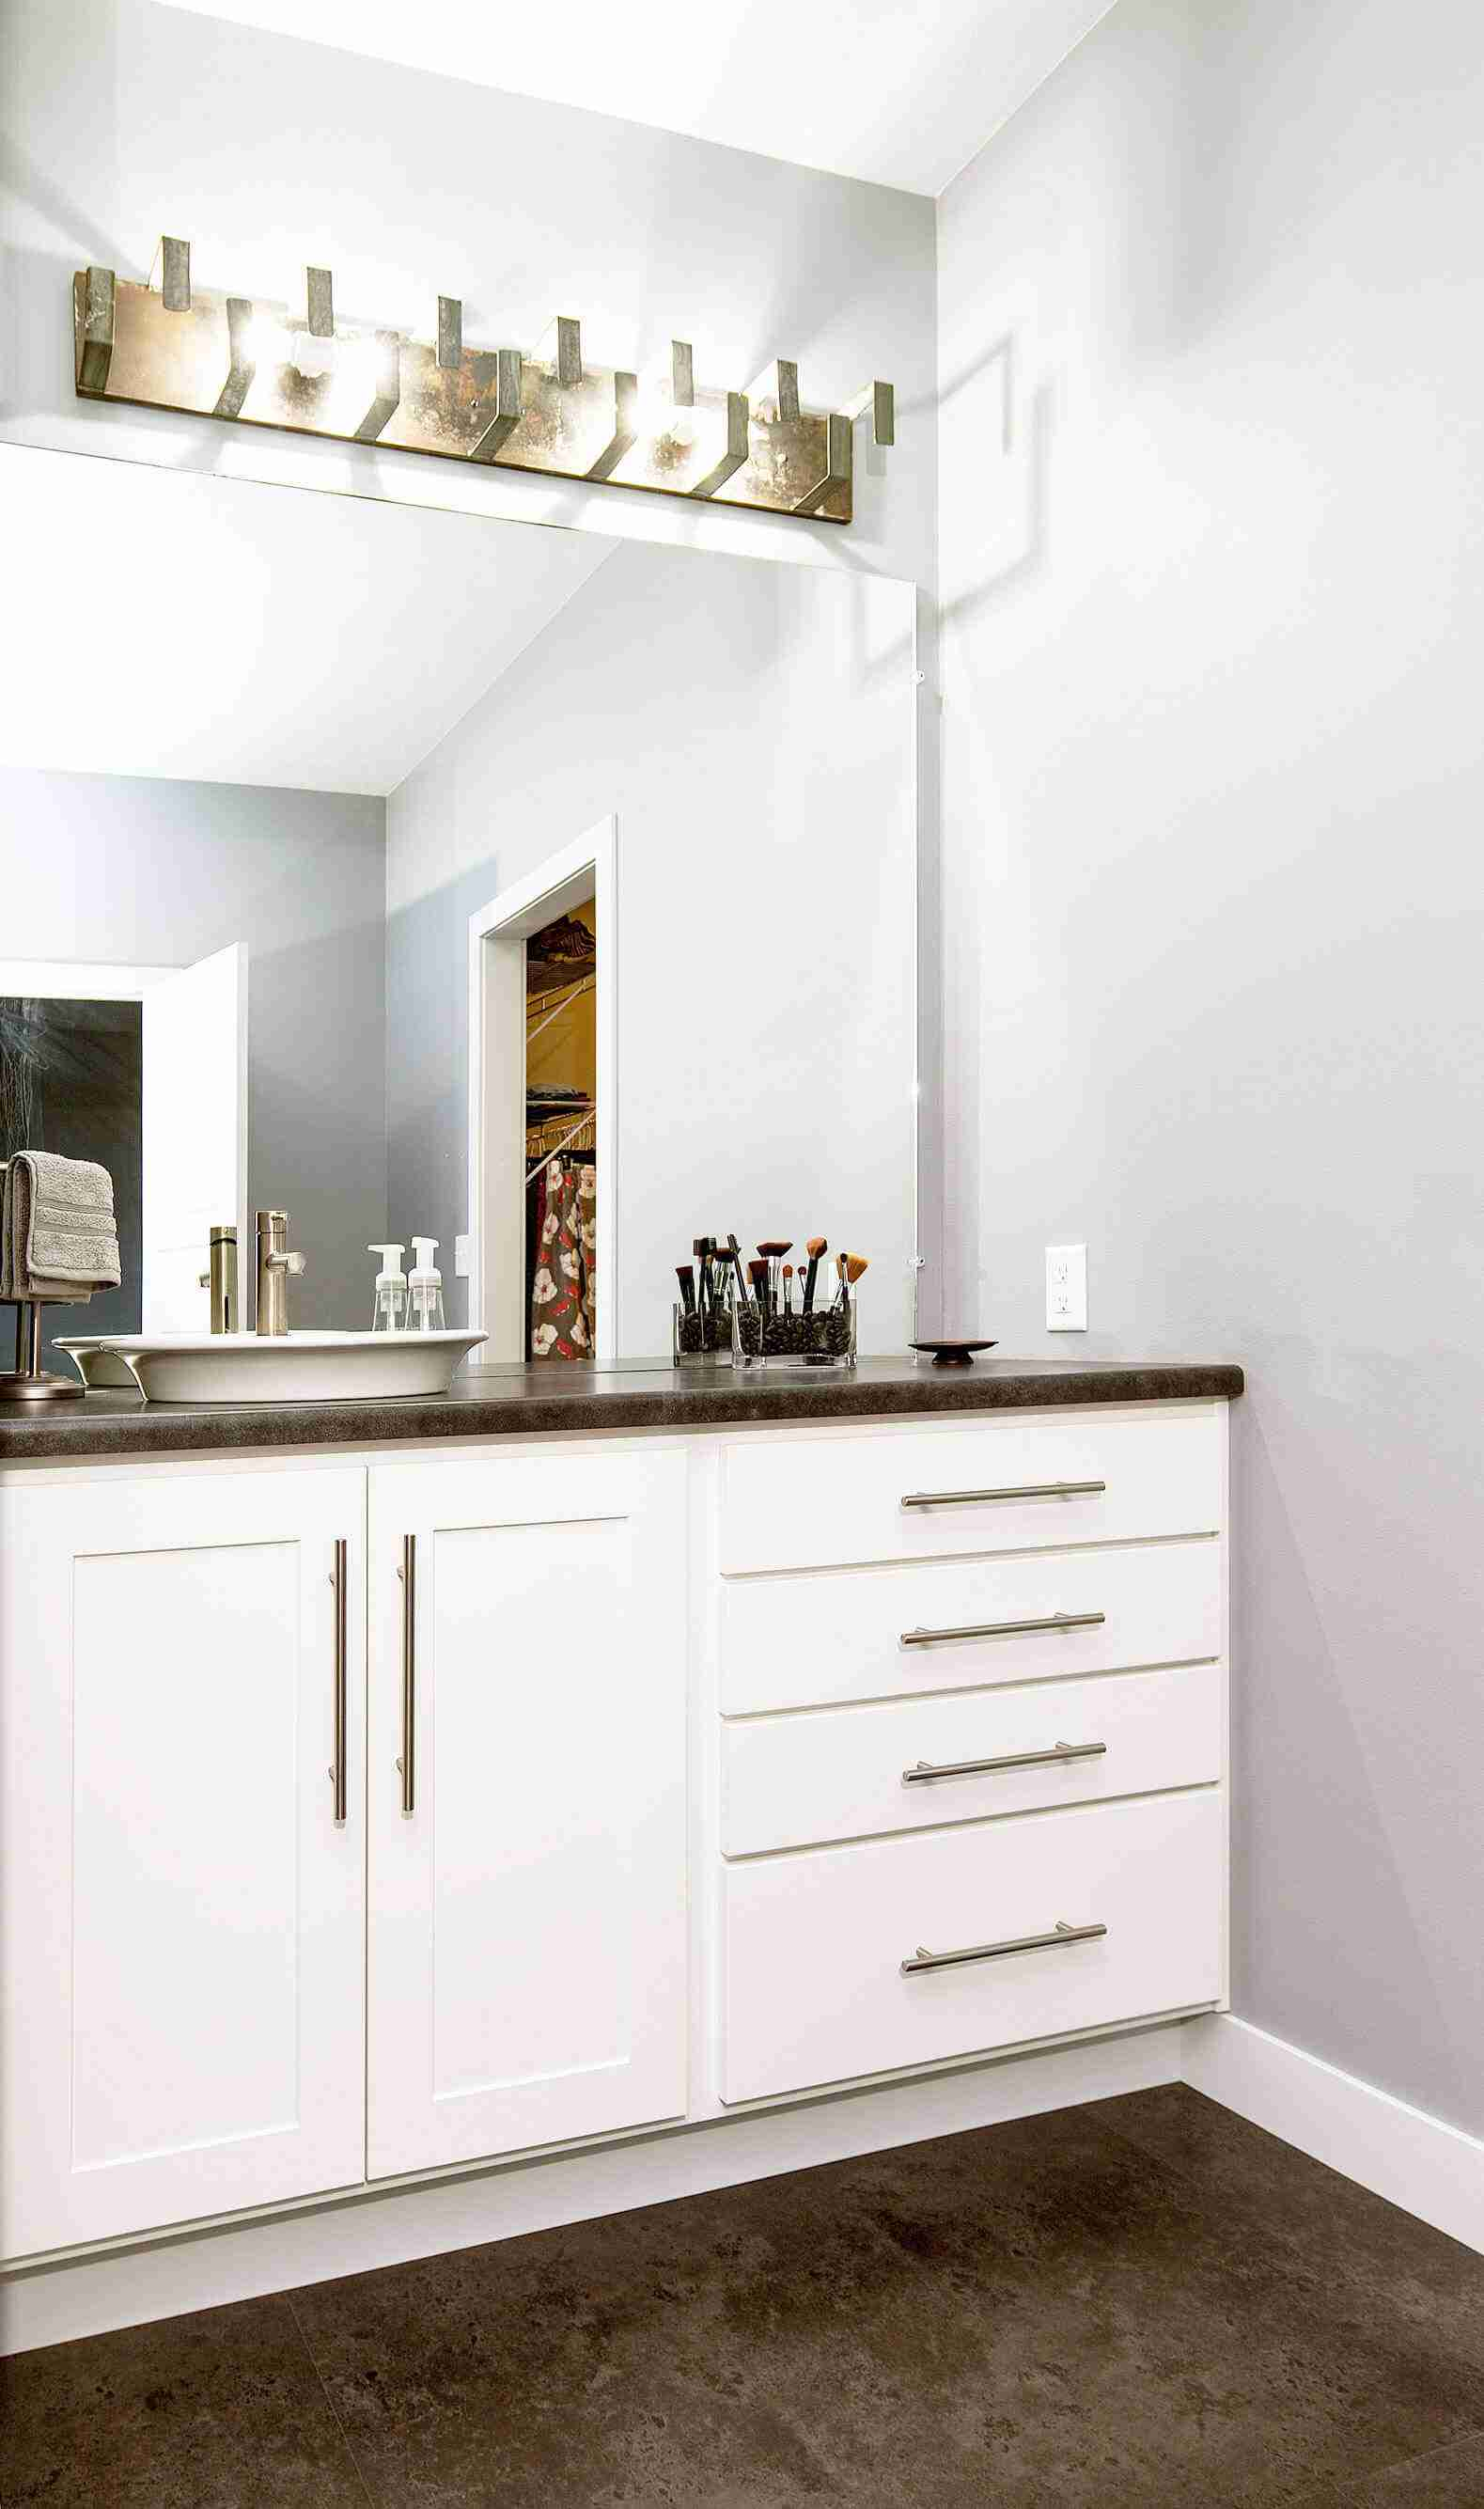 Home Ags Stone Cabinetry Countertops Tile